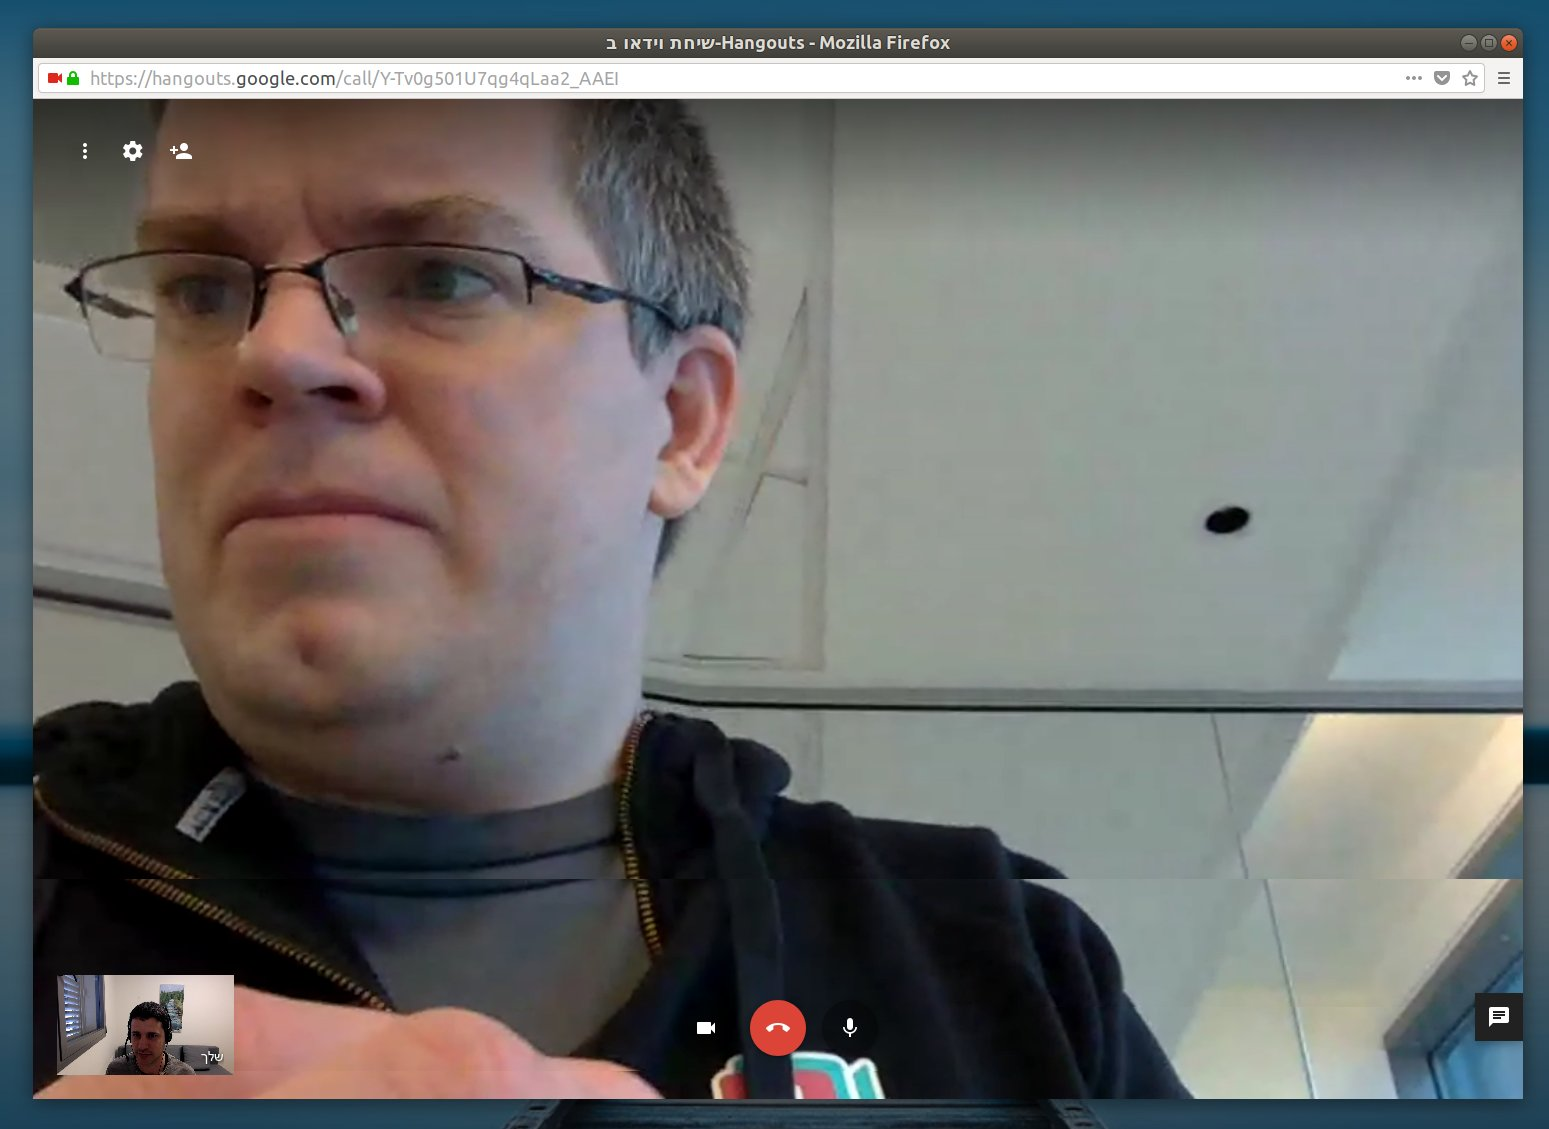 All I want for Christmas is Hangouts to use WebRTC on